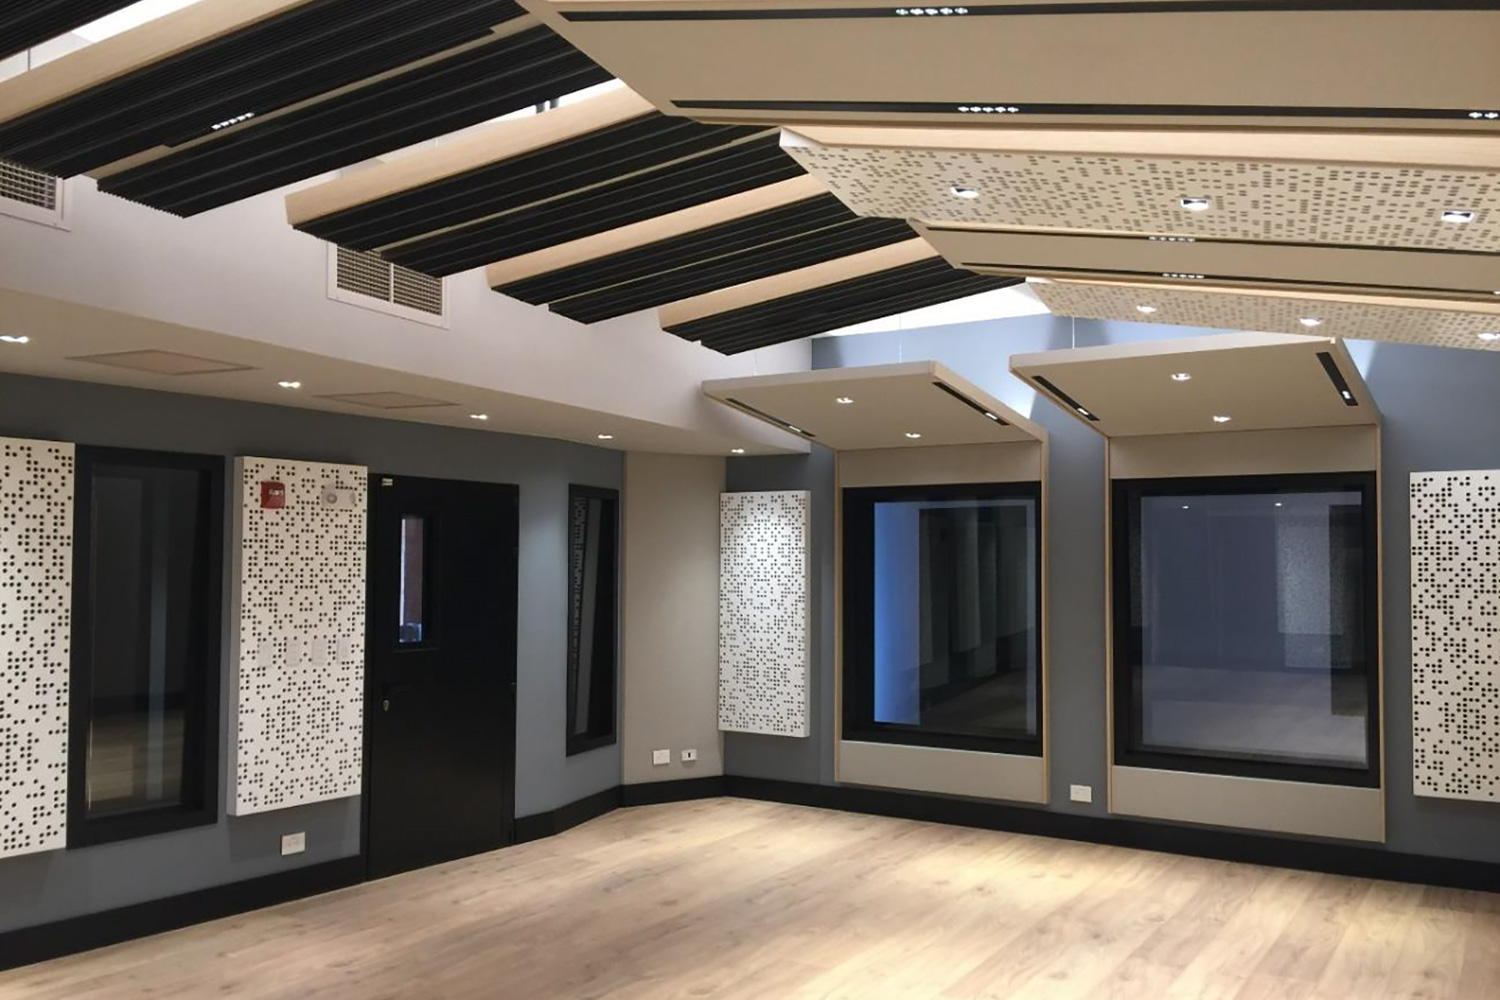 Universidad ICESI in Cali, Colombia commissioned WSDG to design their new music performance, composition and production building with world-class recording studios. Ensemble Room.